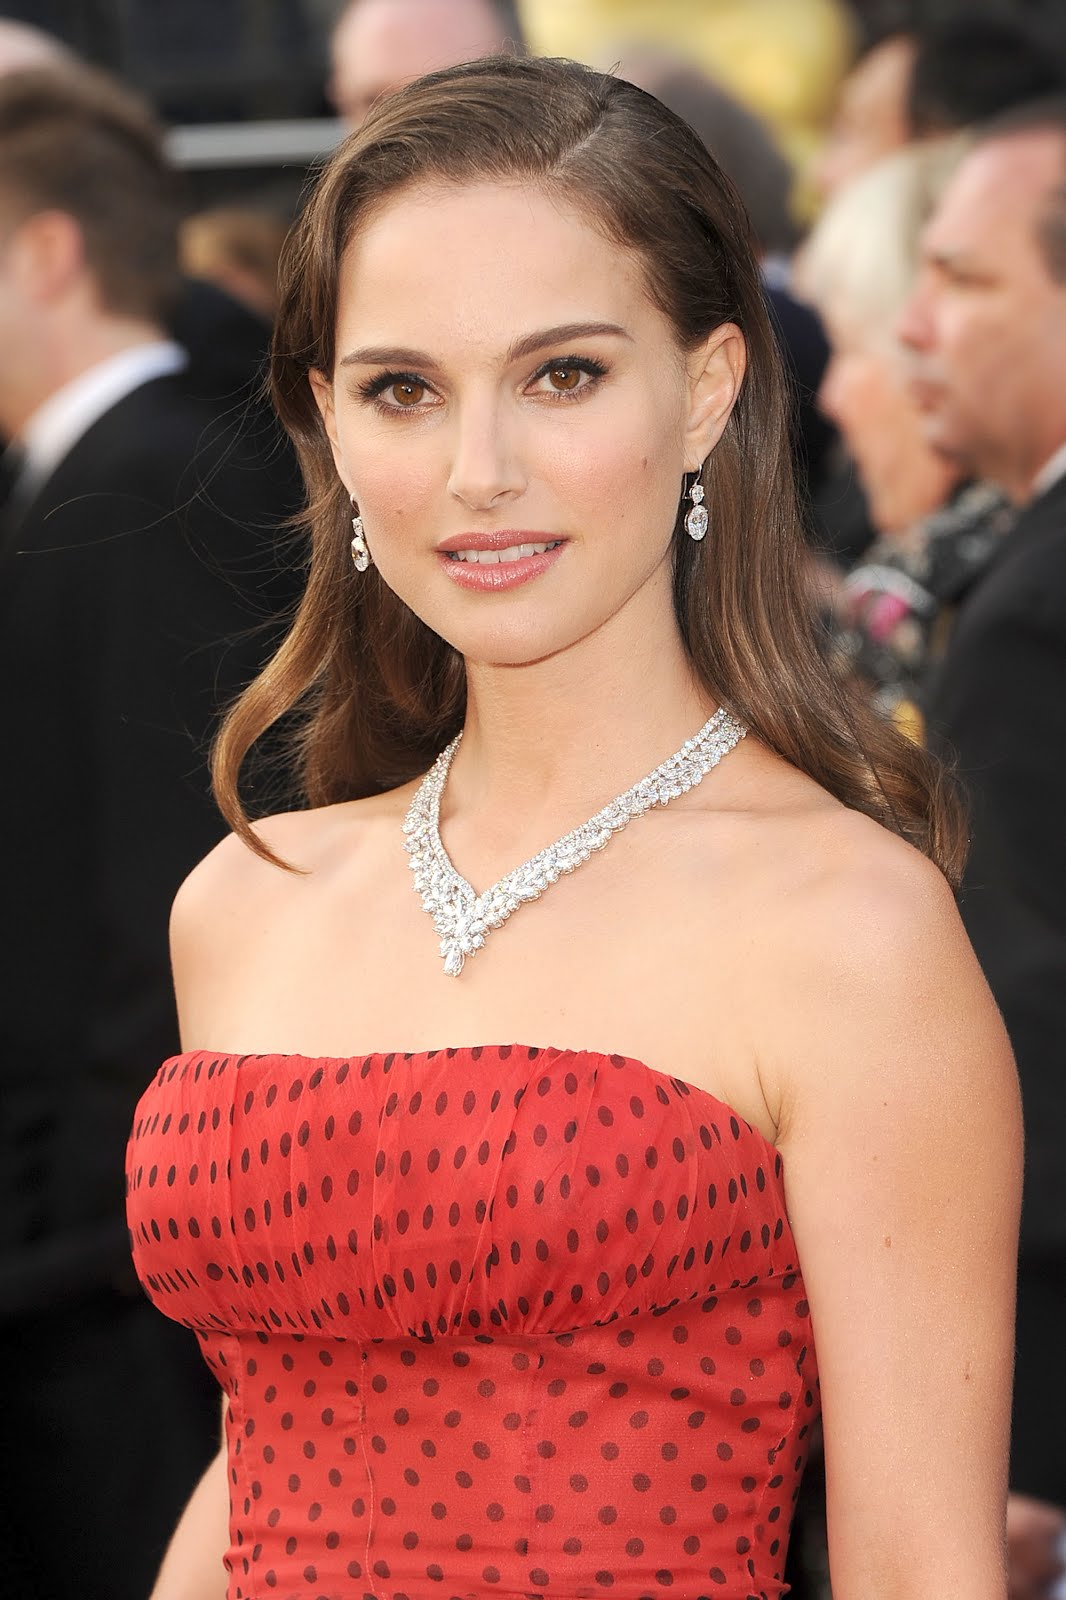 Natalie Portman Beautiful Close Up Pose Sky Seventh Surga